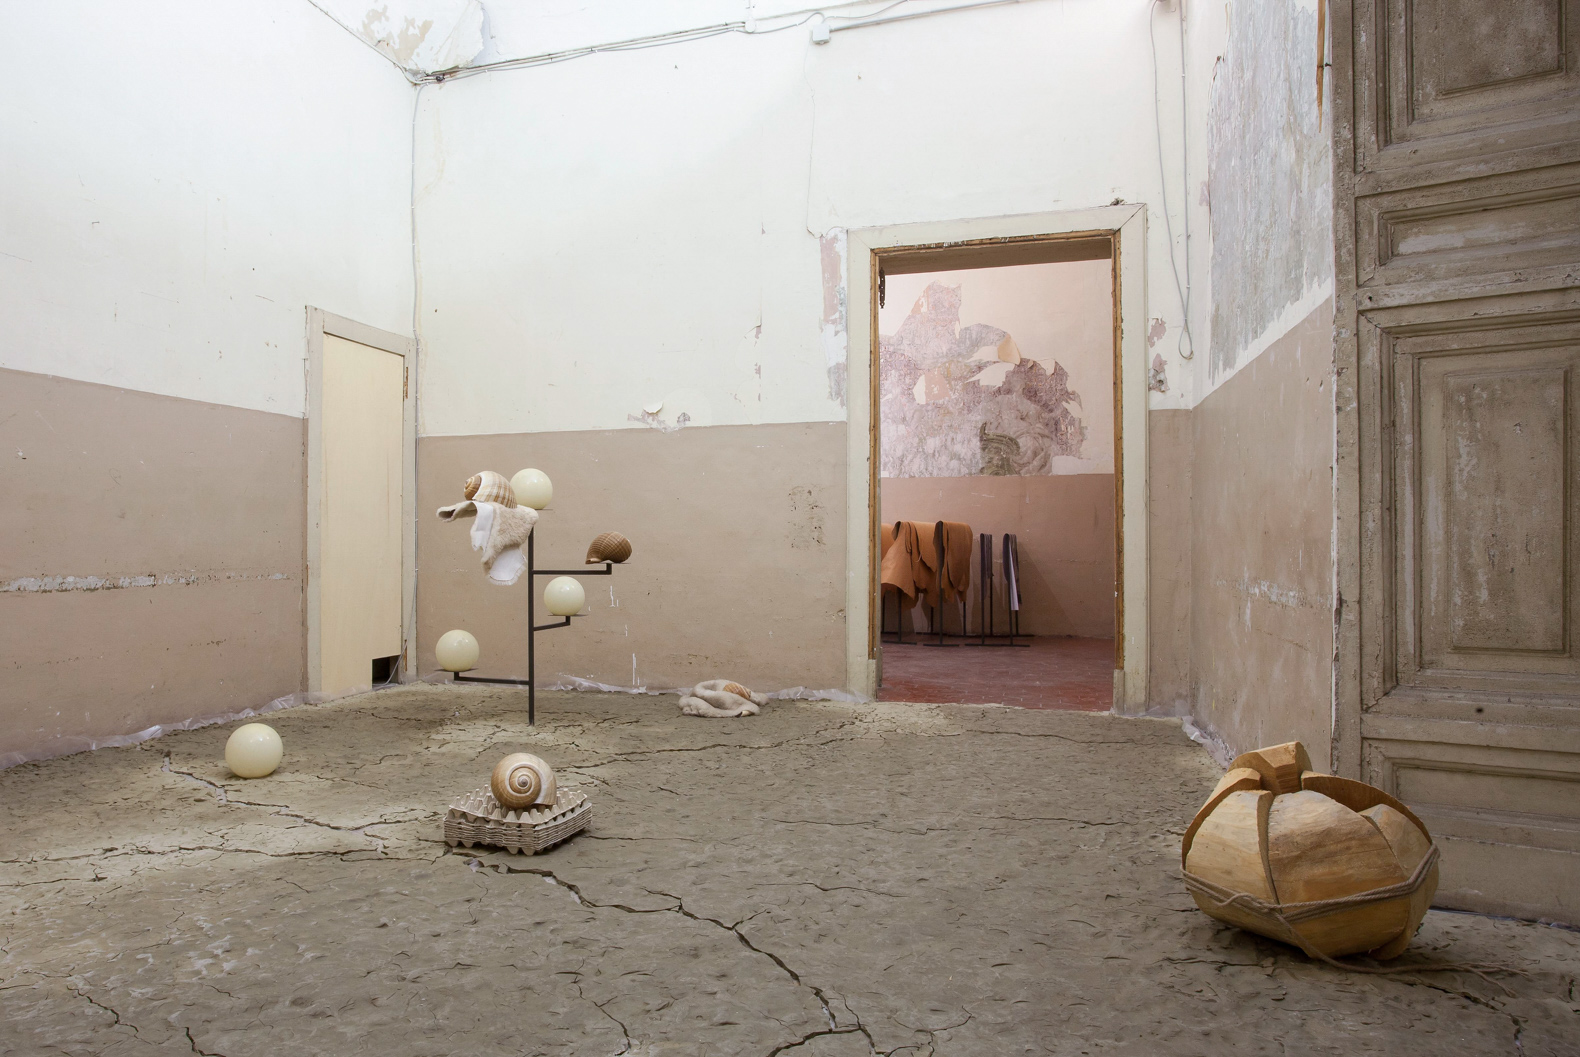 Things That Happen and Things That Are Done. On Beginnings and Matter, installation view, Fondazione Morra Greco, Naples, Italy, 2014